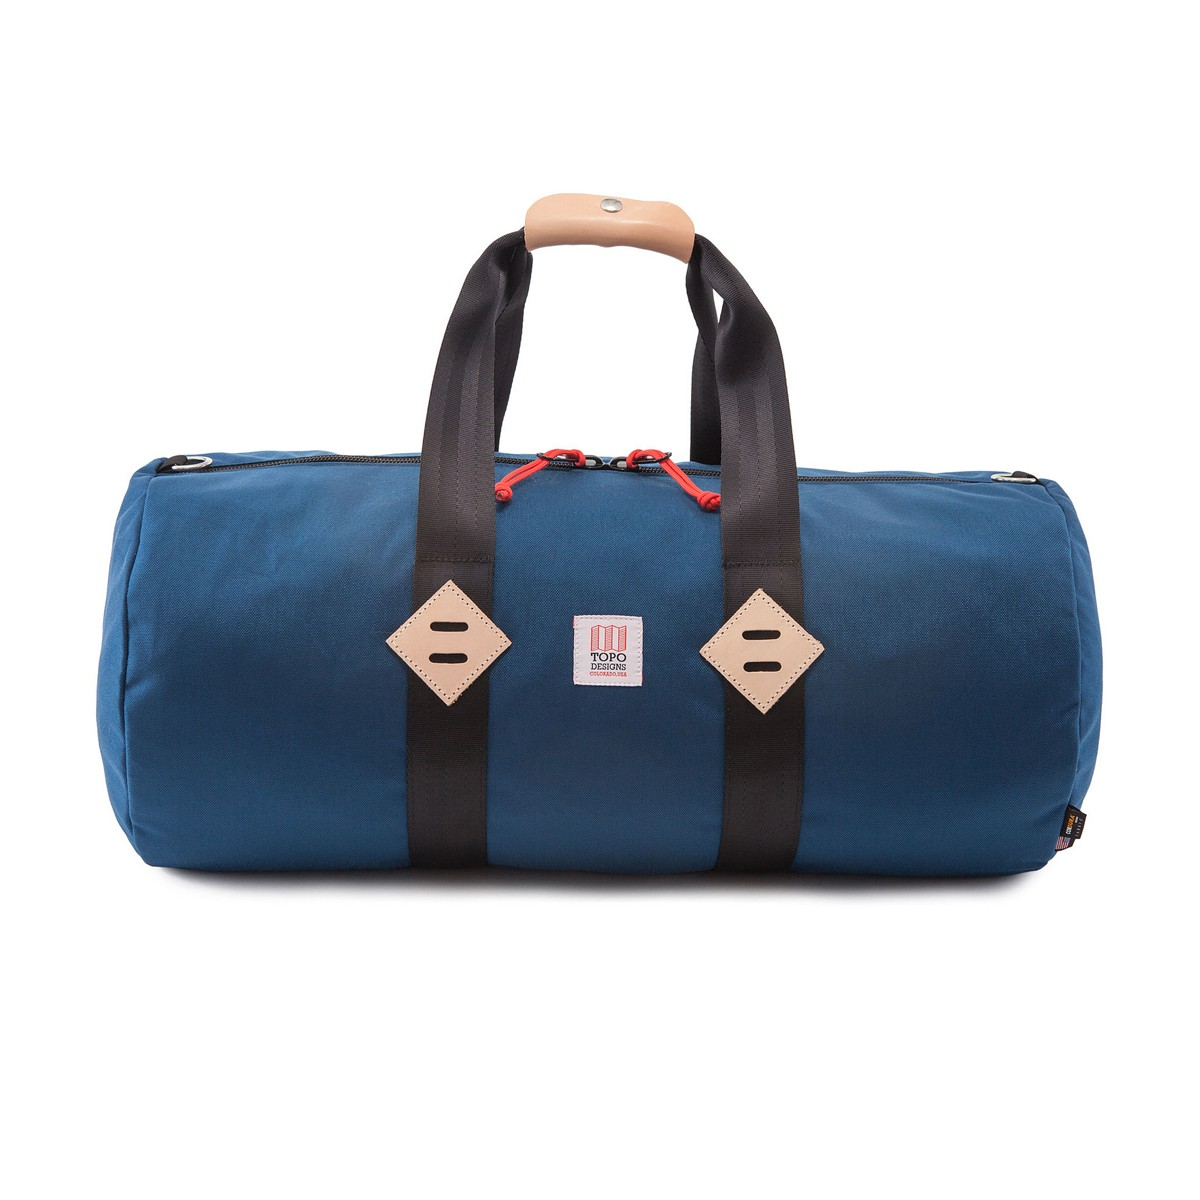 Classic duffle bag with leather details